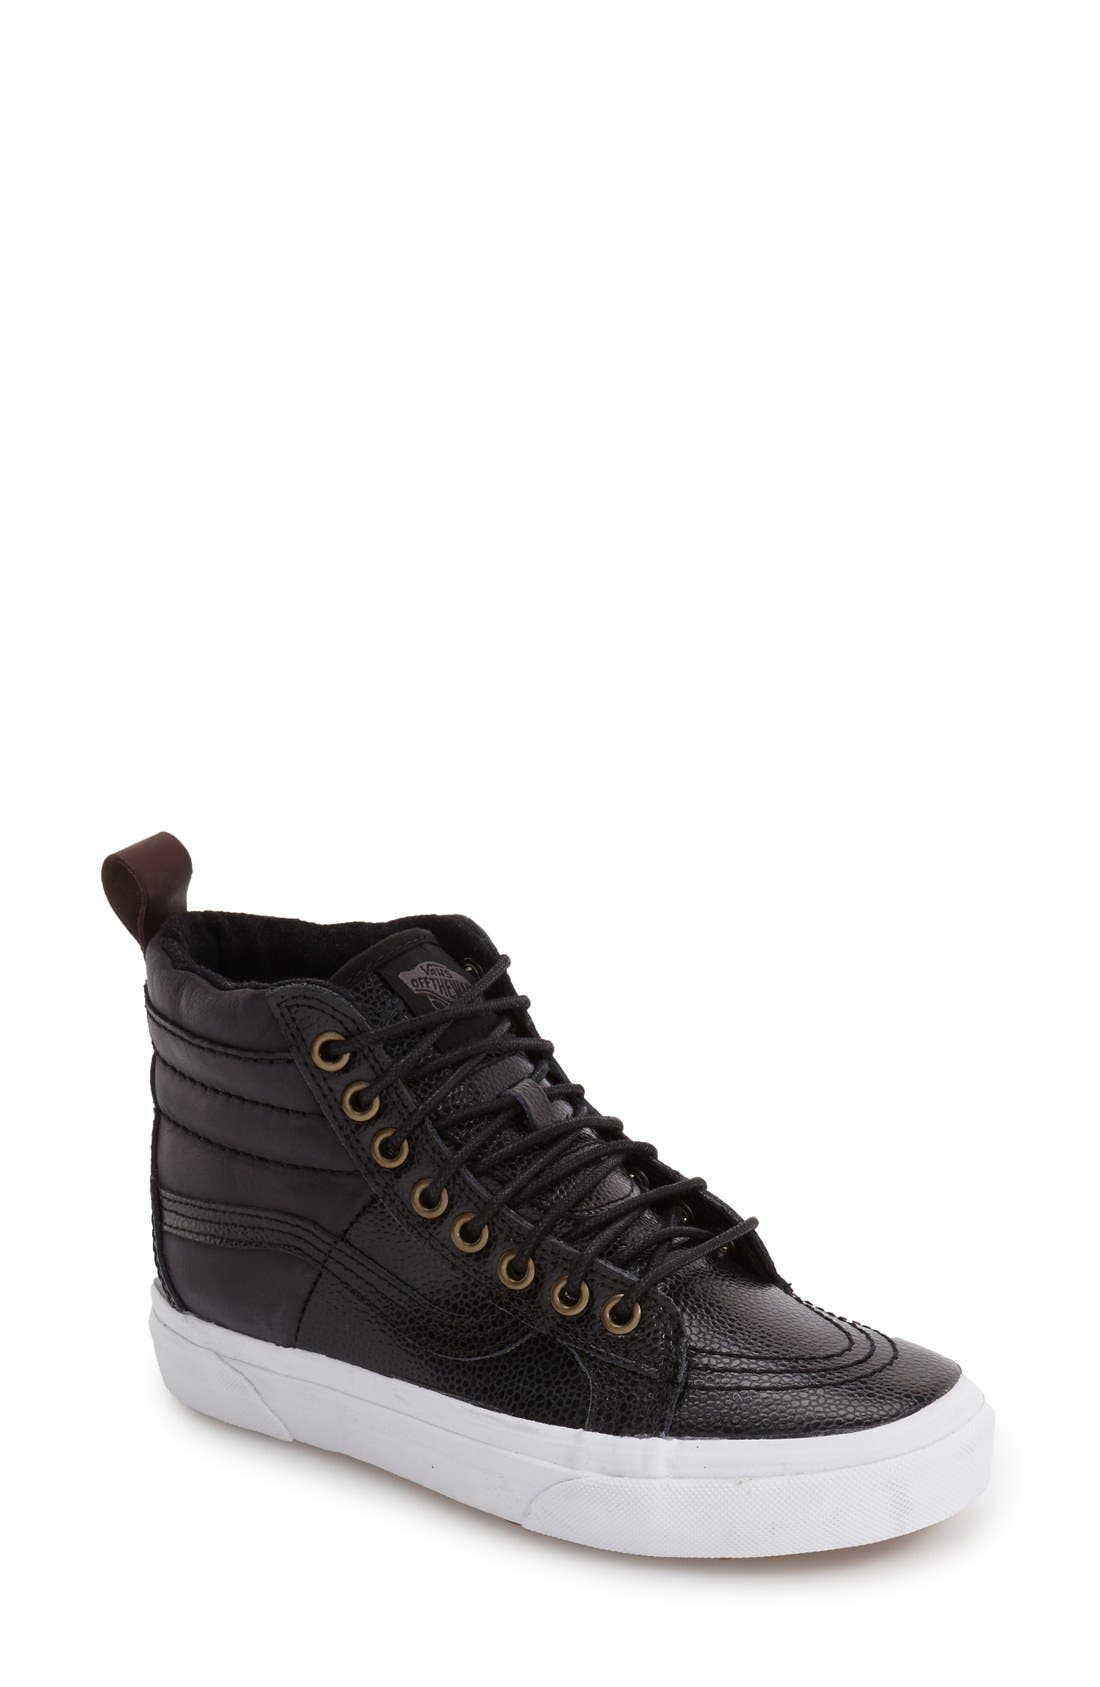 'Hana Beaman - Sk8-Hi 46 MTE' Water Resistant High Top Sneaker,                         Main,                         color, 001